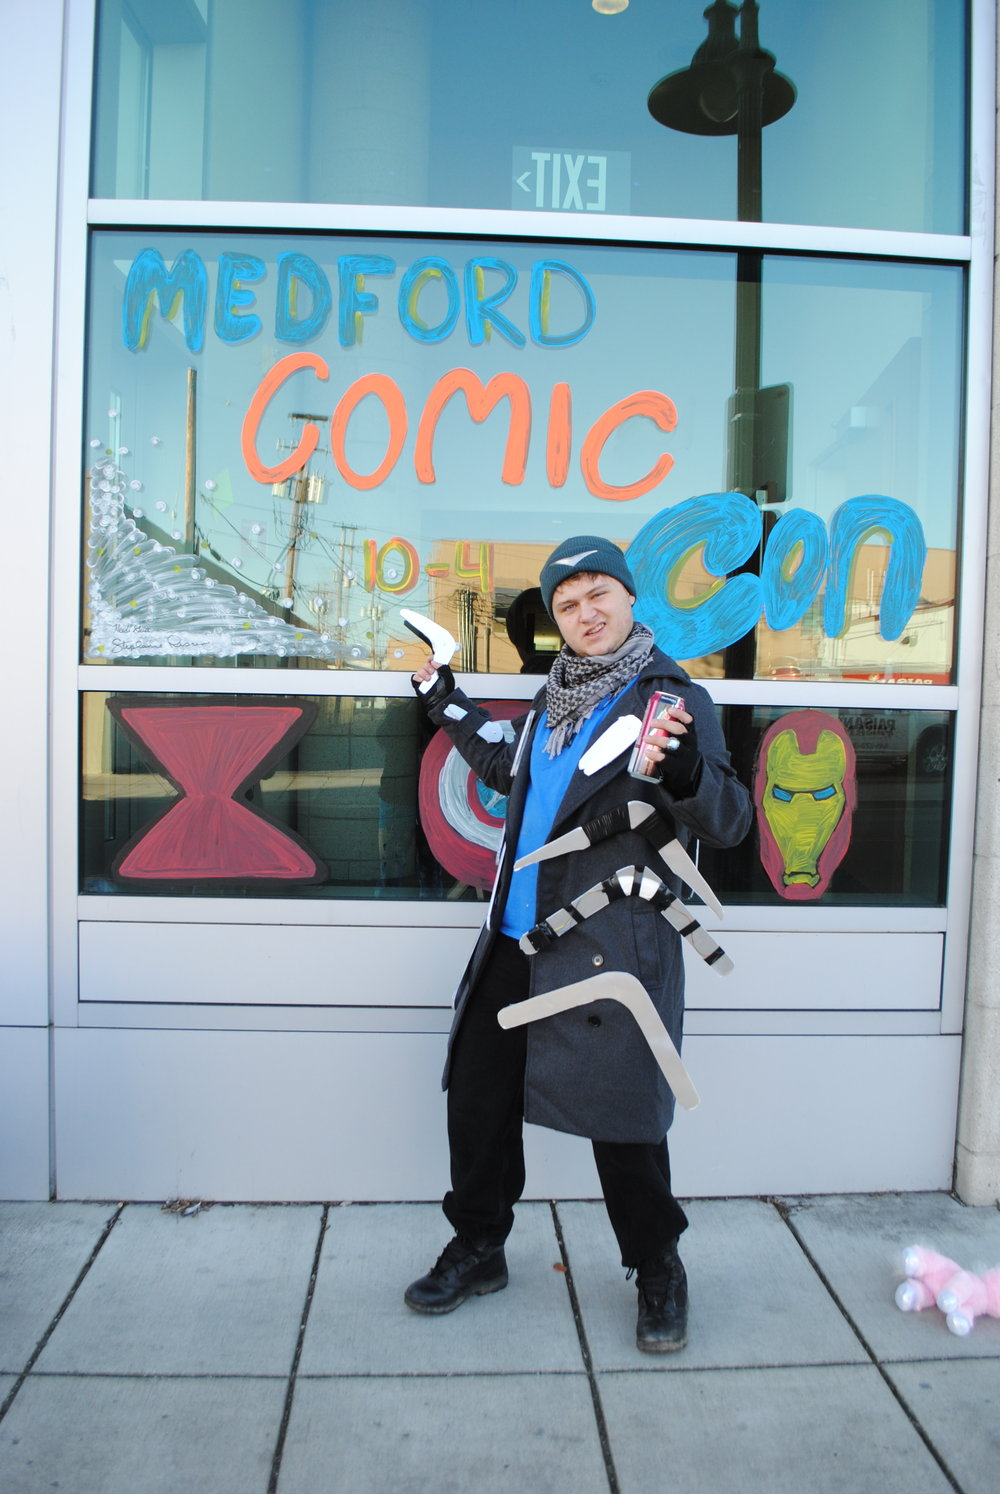 MEDFORD COMIC-CON 2017 - What to do in Southern Oregon - Medford - Jackson County Library Services - Rogue Community College - Friends of the Medford Library